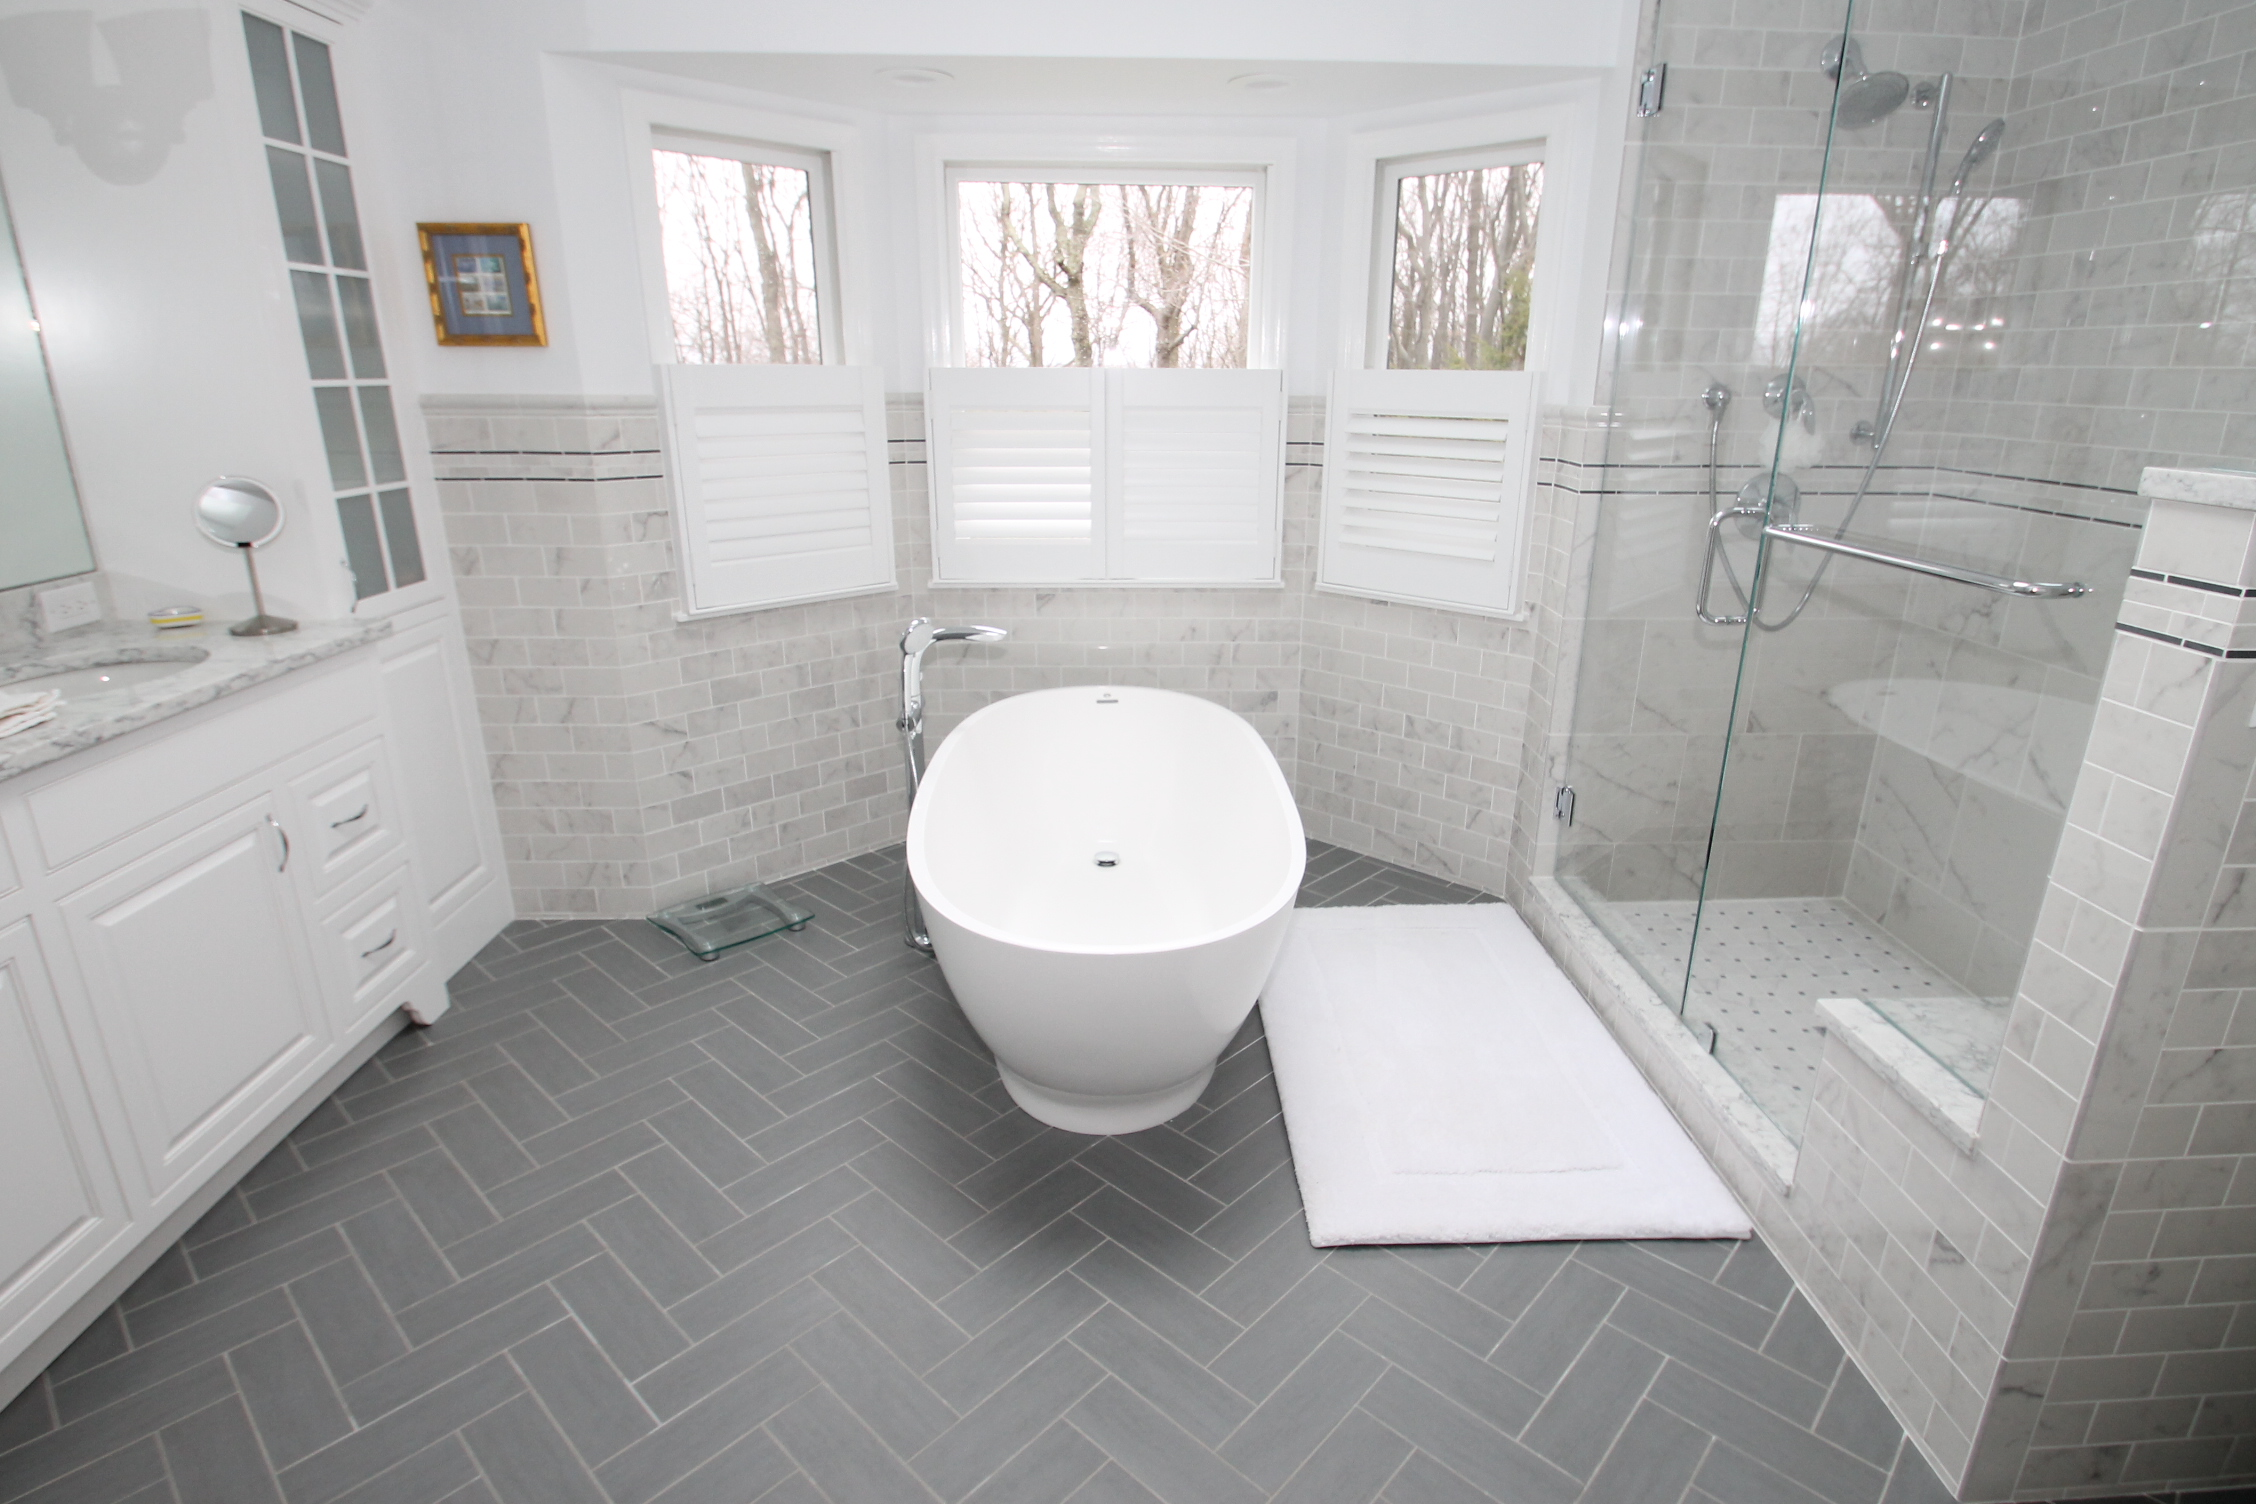 Bathroom Remodeling bathroom remodeling nj bathroom design new jersey bath renovation